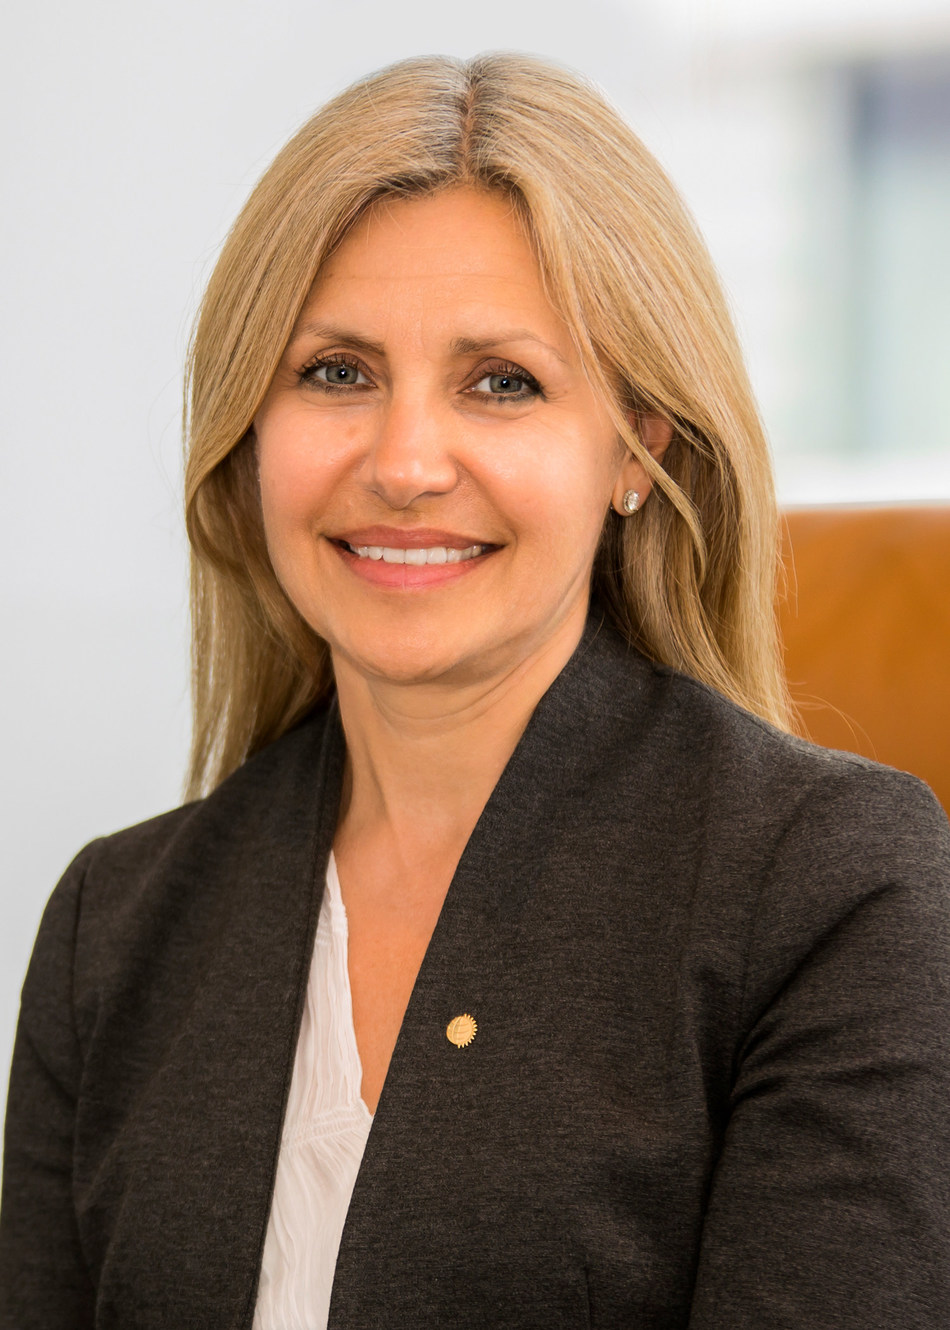 Helena Pagano (CNW Group/Sun Life Financial Inc.)